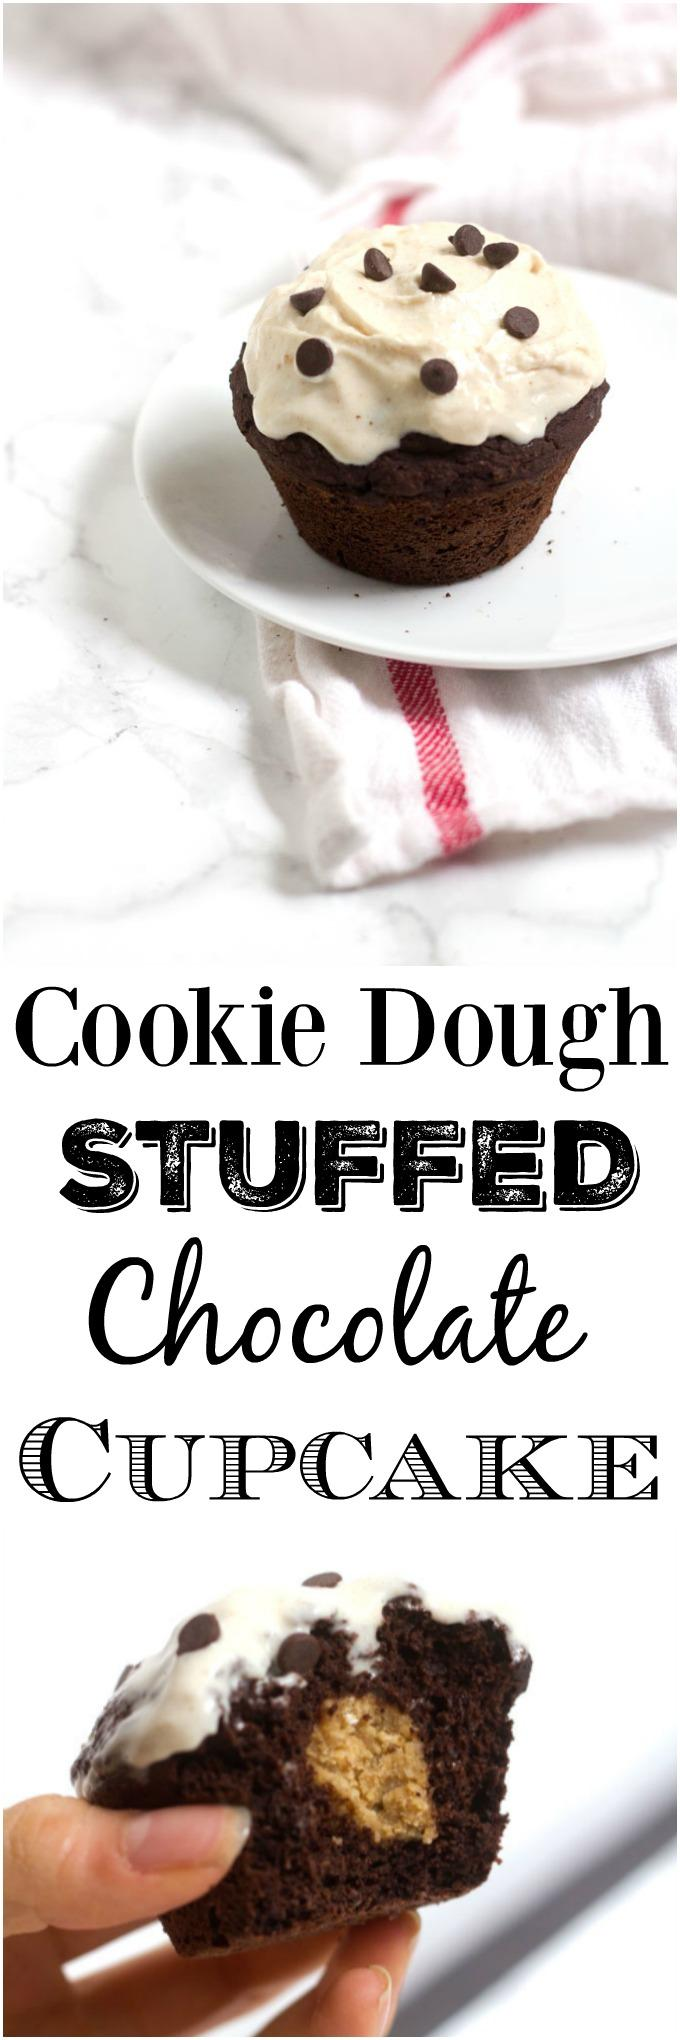 This single serving Cookie Dough Stuffed Chocolate Cupcake is the perfect dessert to satisfy your sweet tooth without leaving lots of extras around to tempt you later.